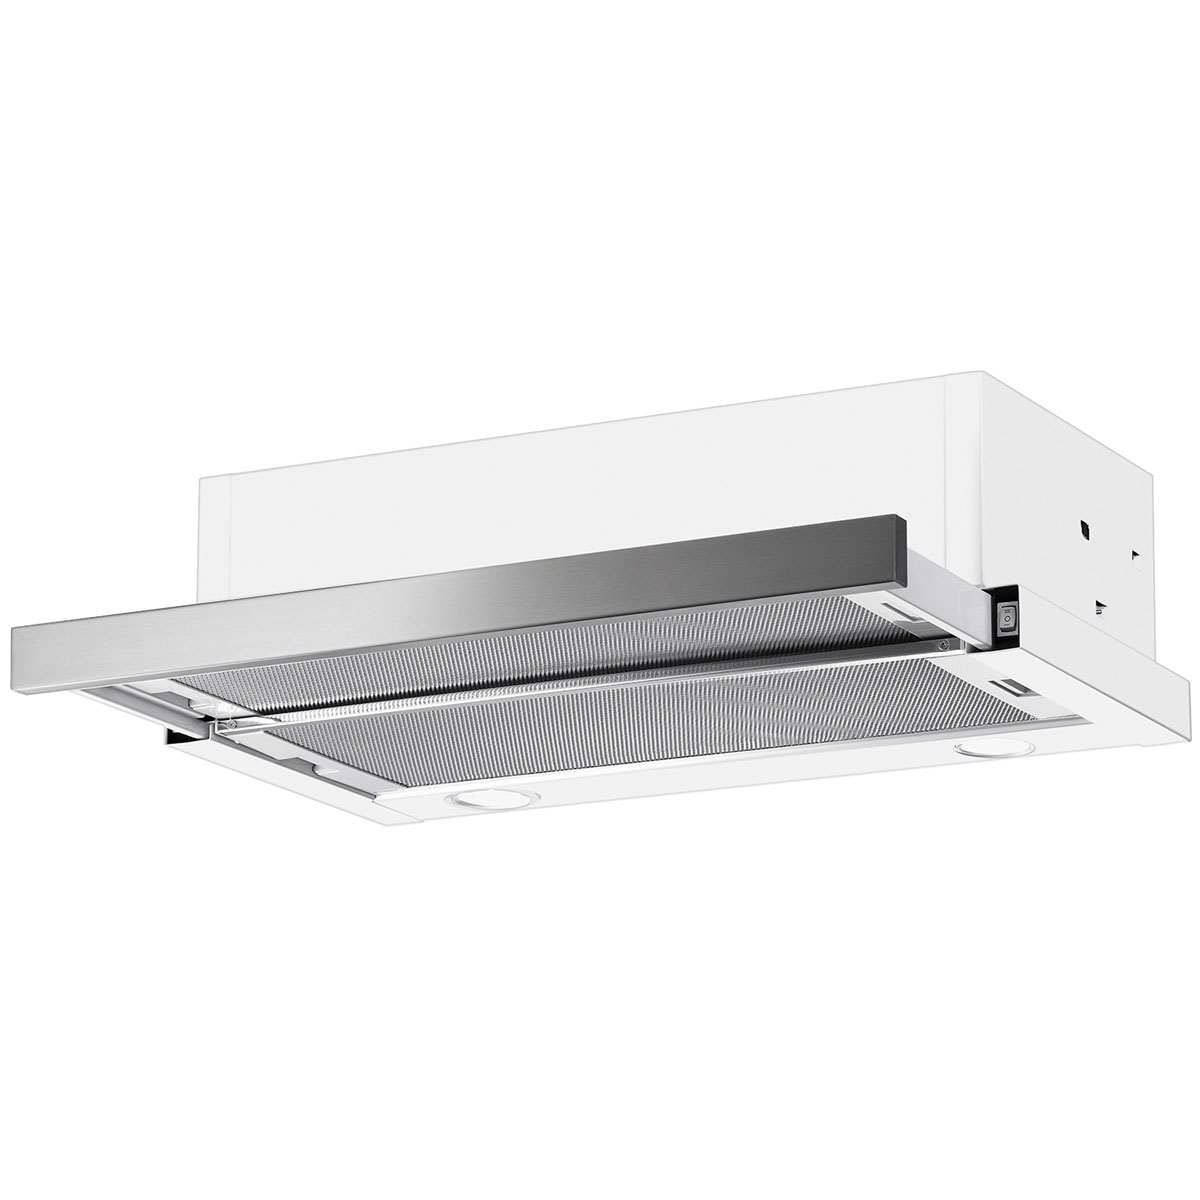 Smeg Slide Out Rangehood HS60LXW4